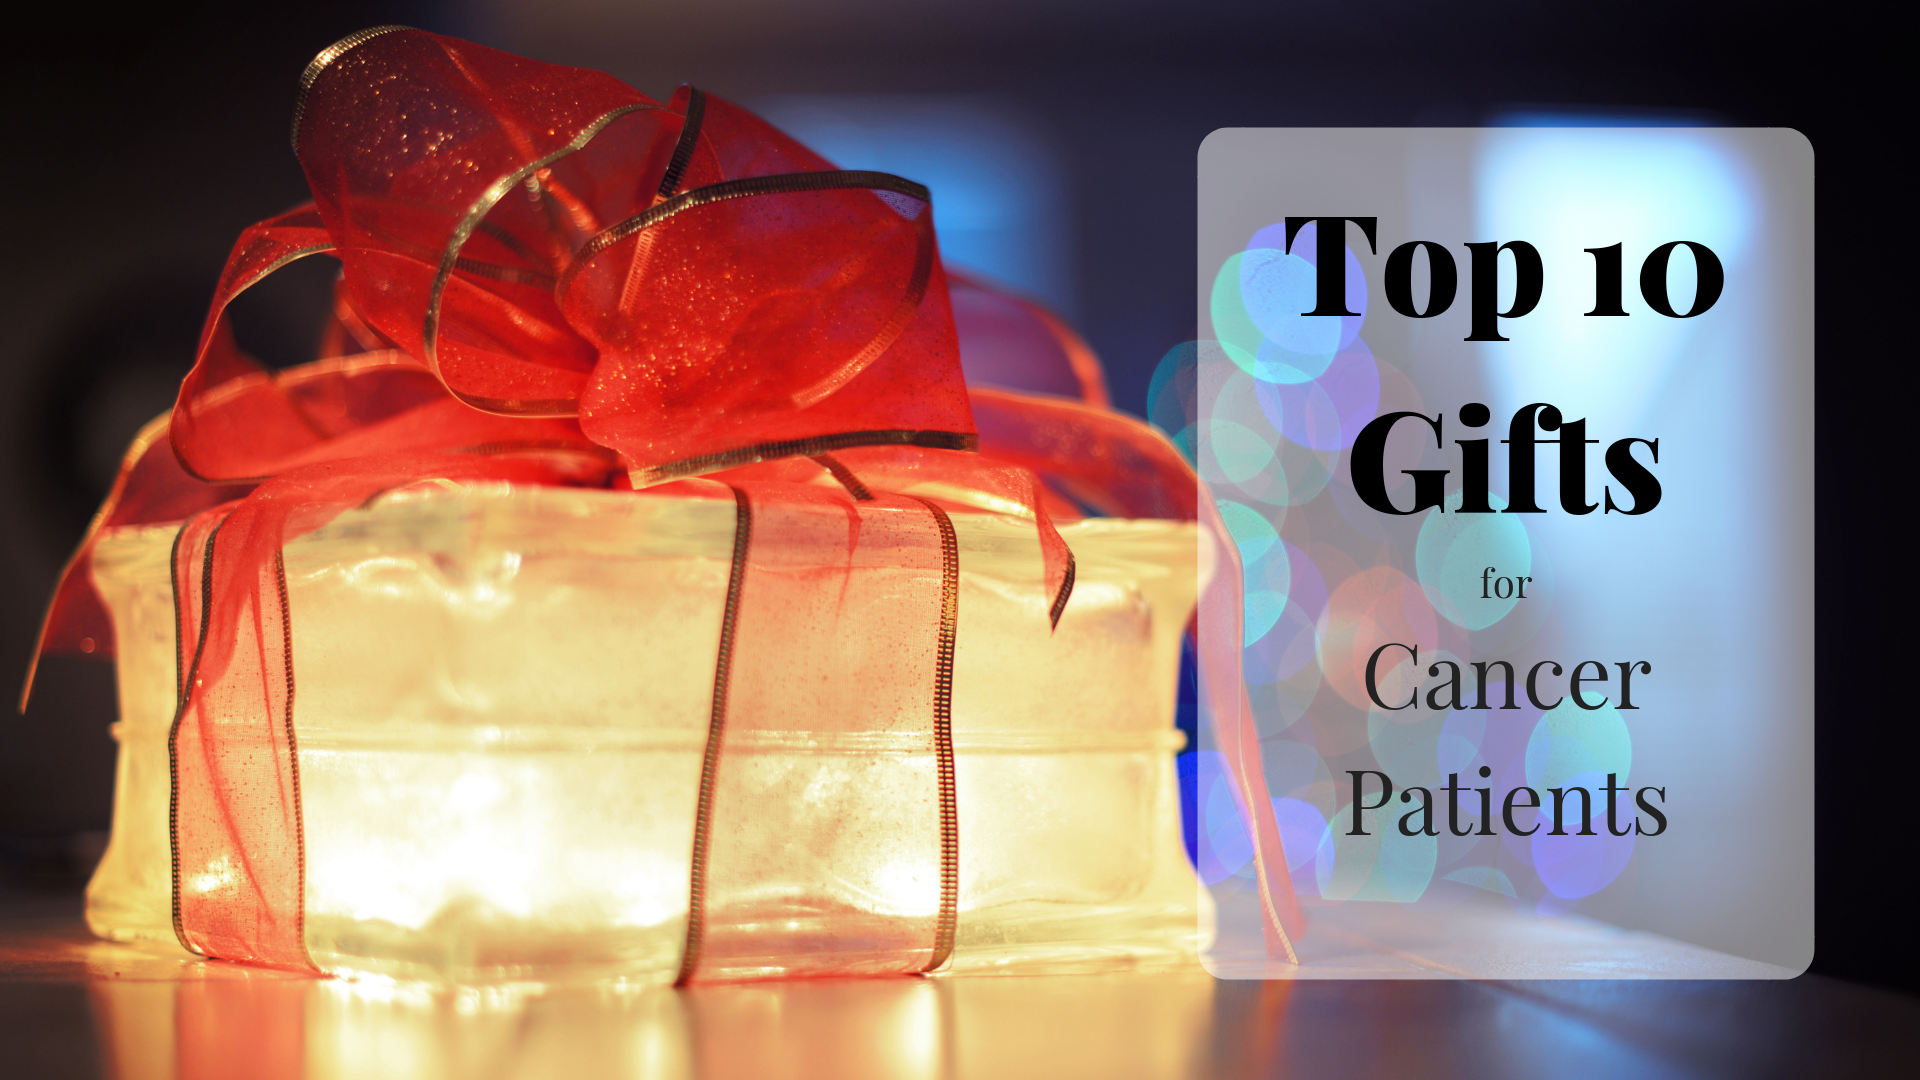 Great list of gift ideas for cancer patients...from someone who's been there